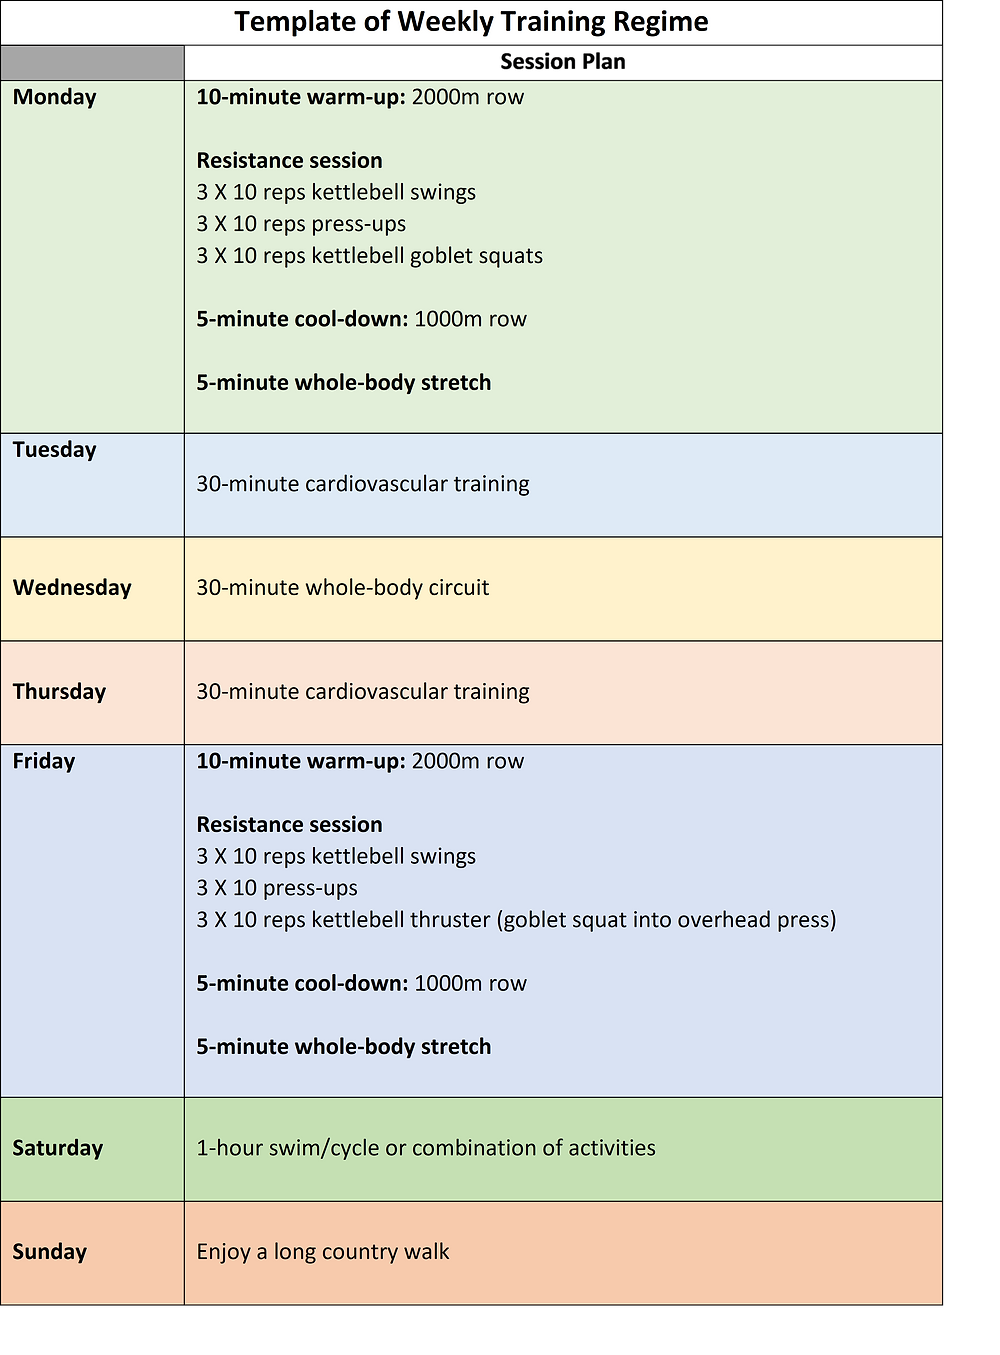 a weekly training programme showing that you can exercise every day.